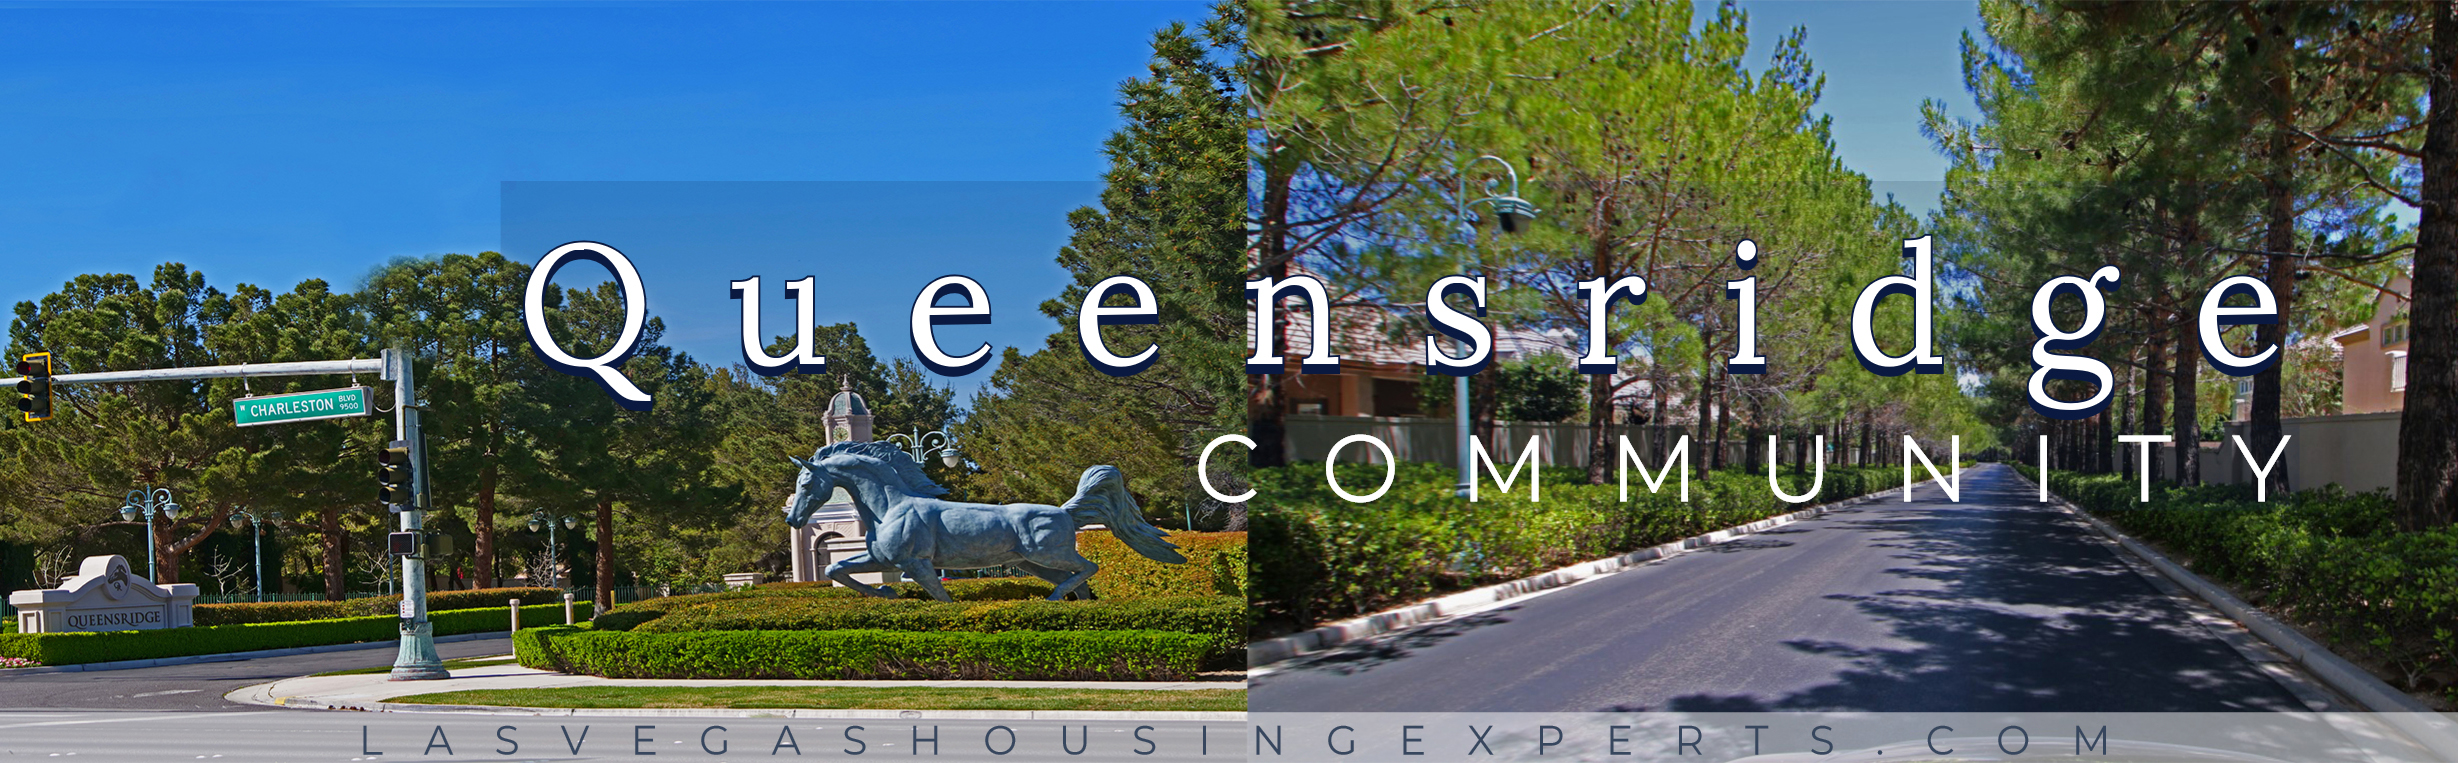 Queensridge Las Vegas Housing Experts real estate